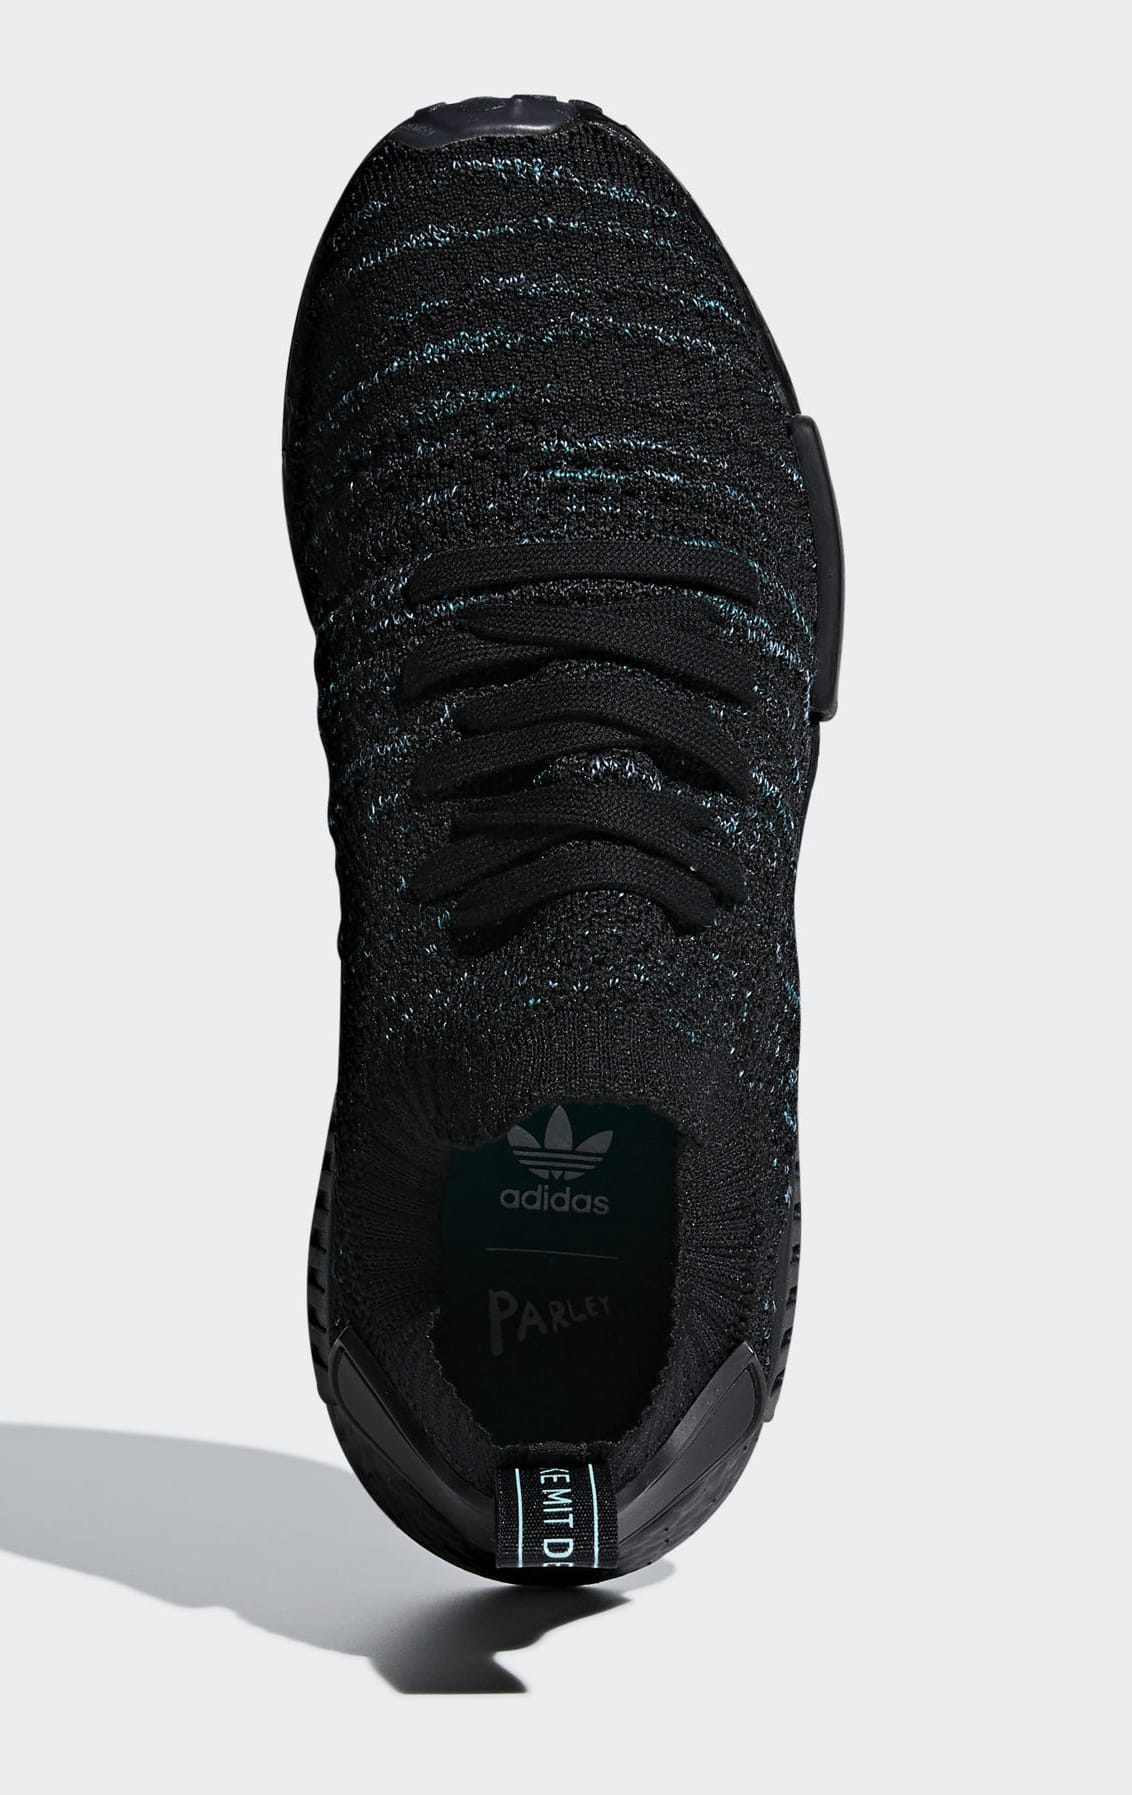 parley-adidas-nmd-r1-core-black-blue-spirit-aq0943-top